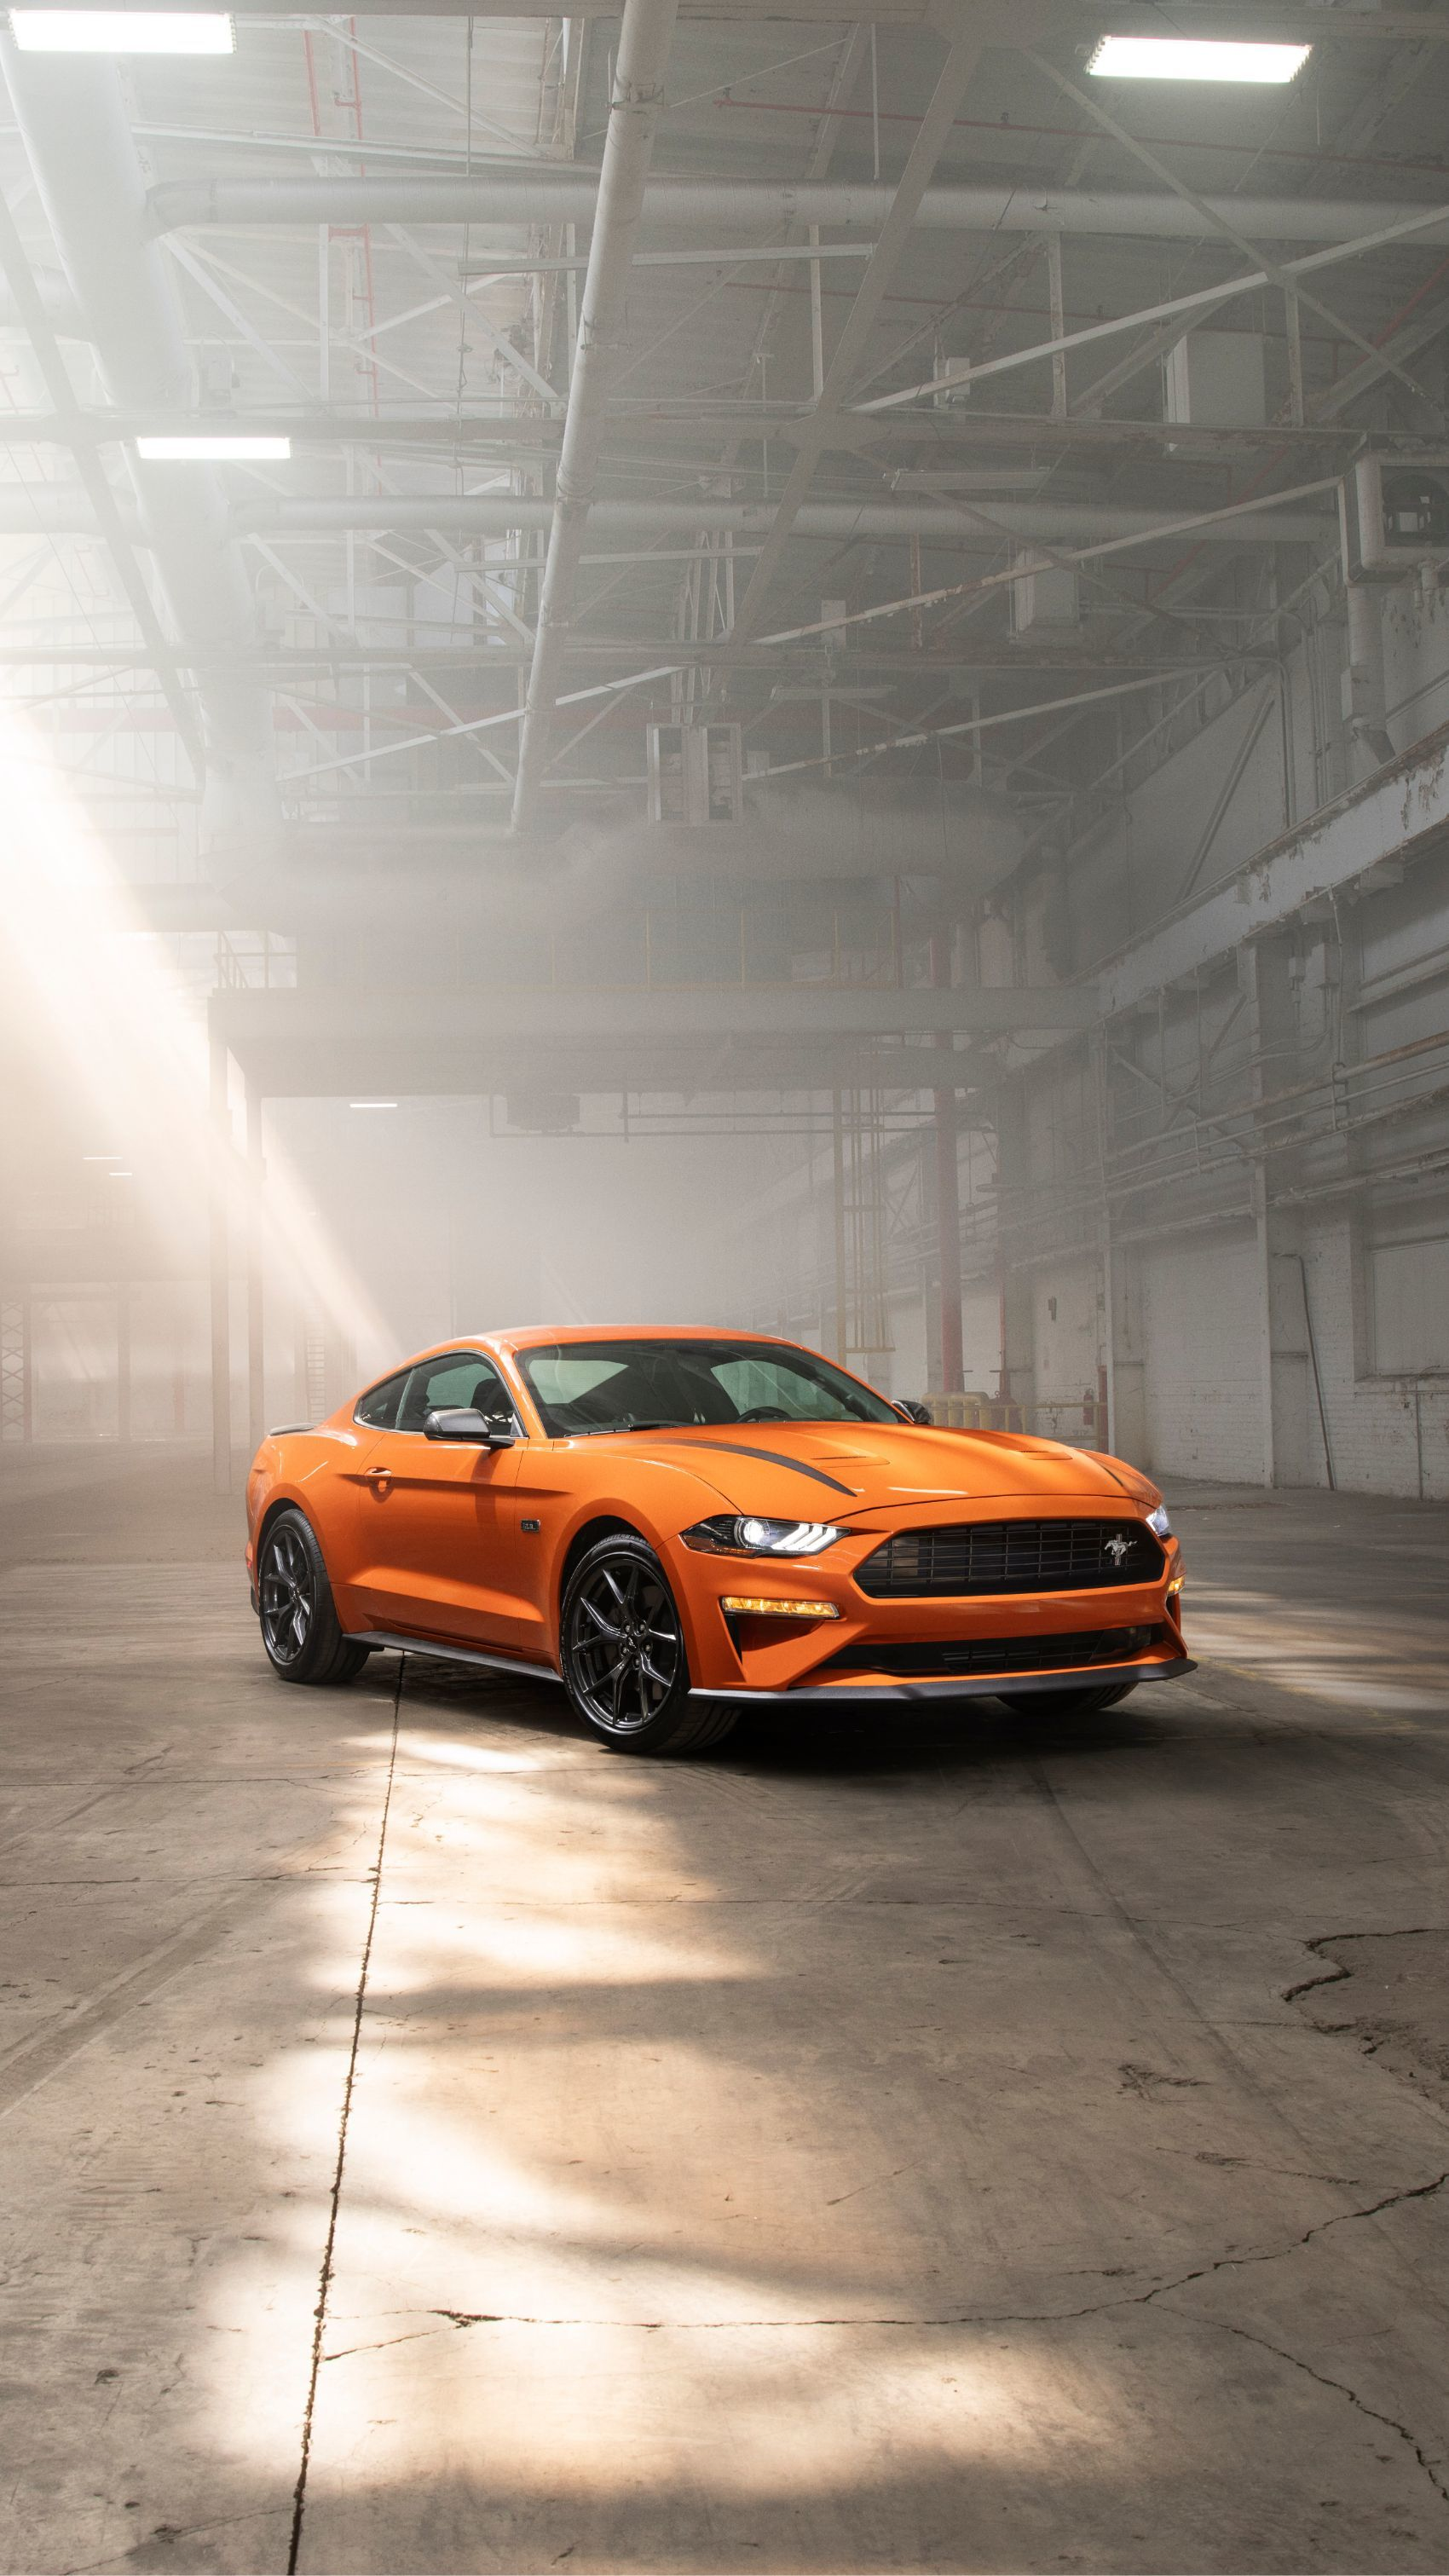 2020 Mustang 2.3L Performance Package: From Engine Swap To Reality